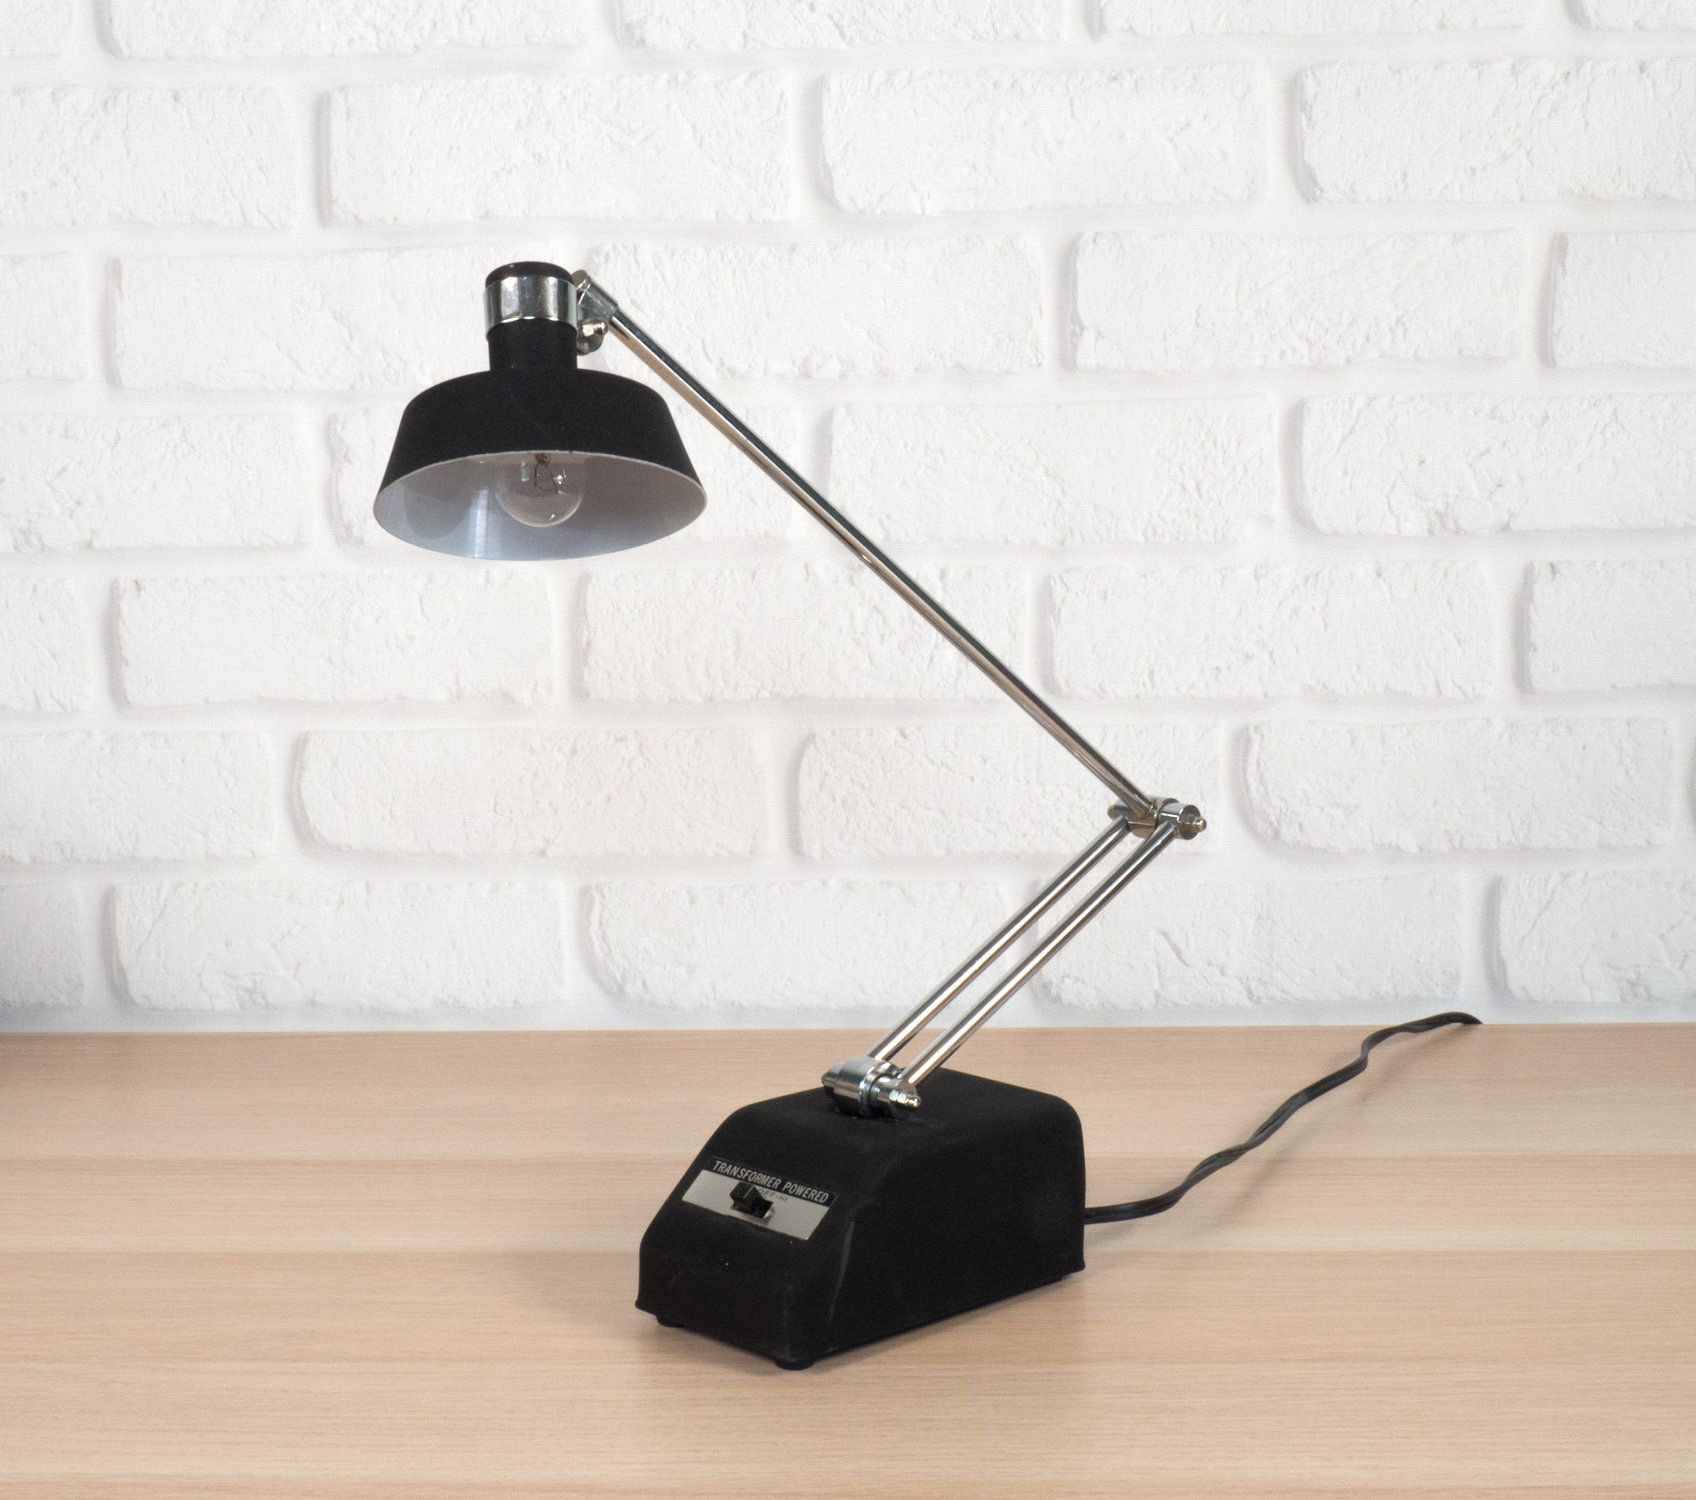 Vintage Mobilite Desk Lamp Black Adjustable Task Light Mid Century Modern Lighting Black Lamps Mid Century Modern Lighting Desk Lamp